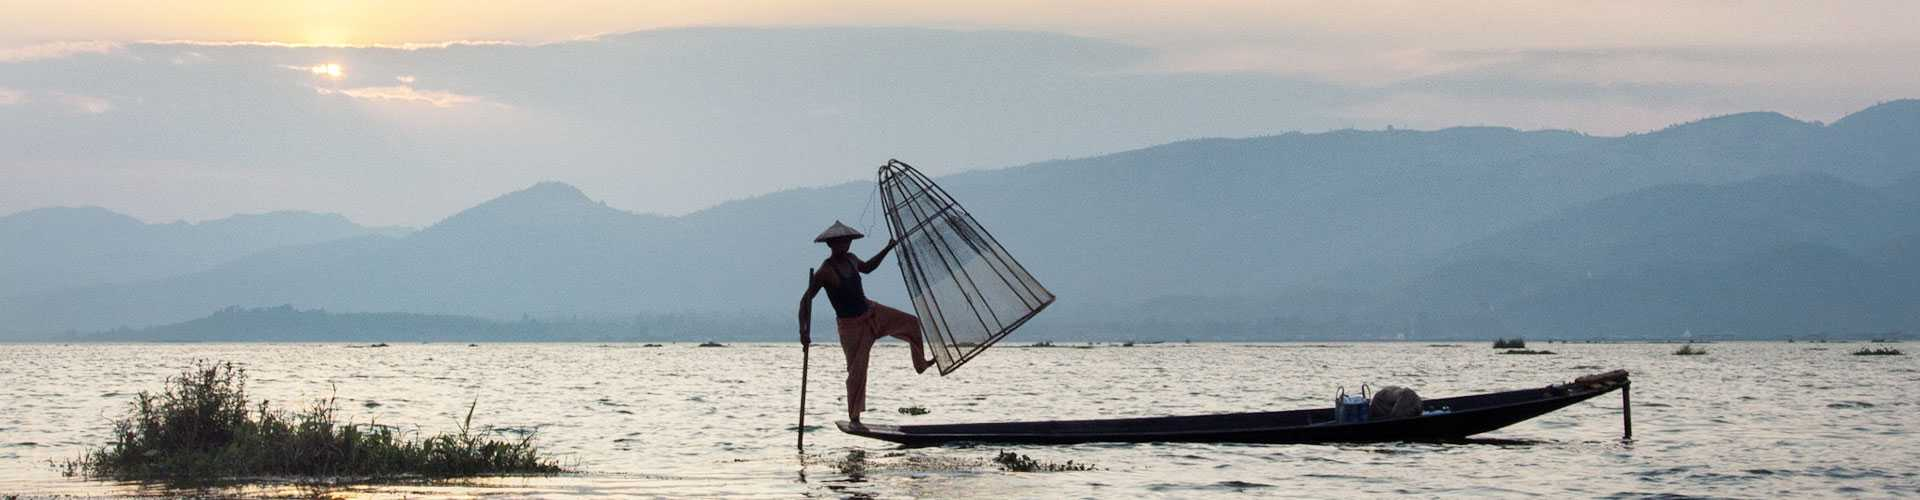 inle lake attraction b21